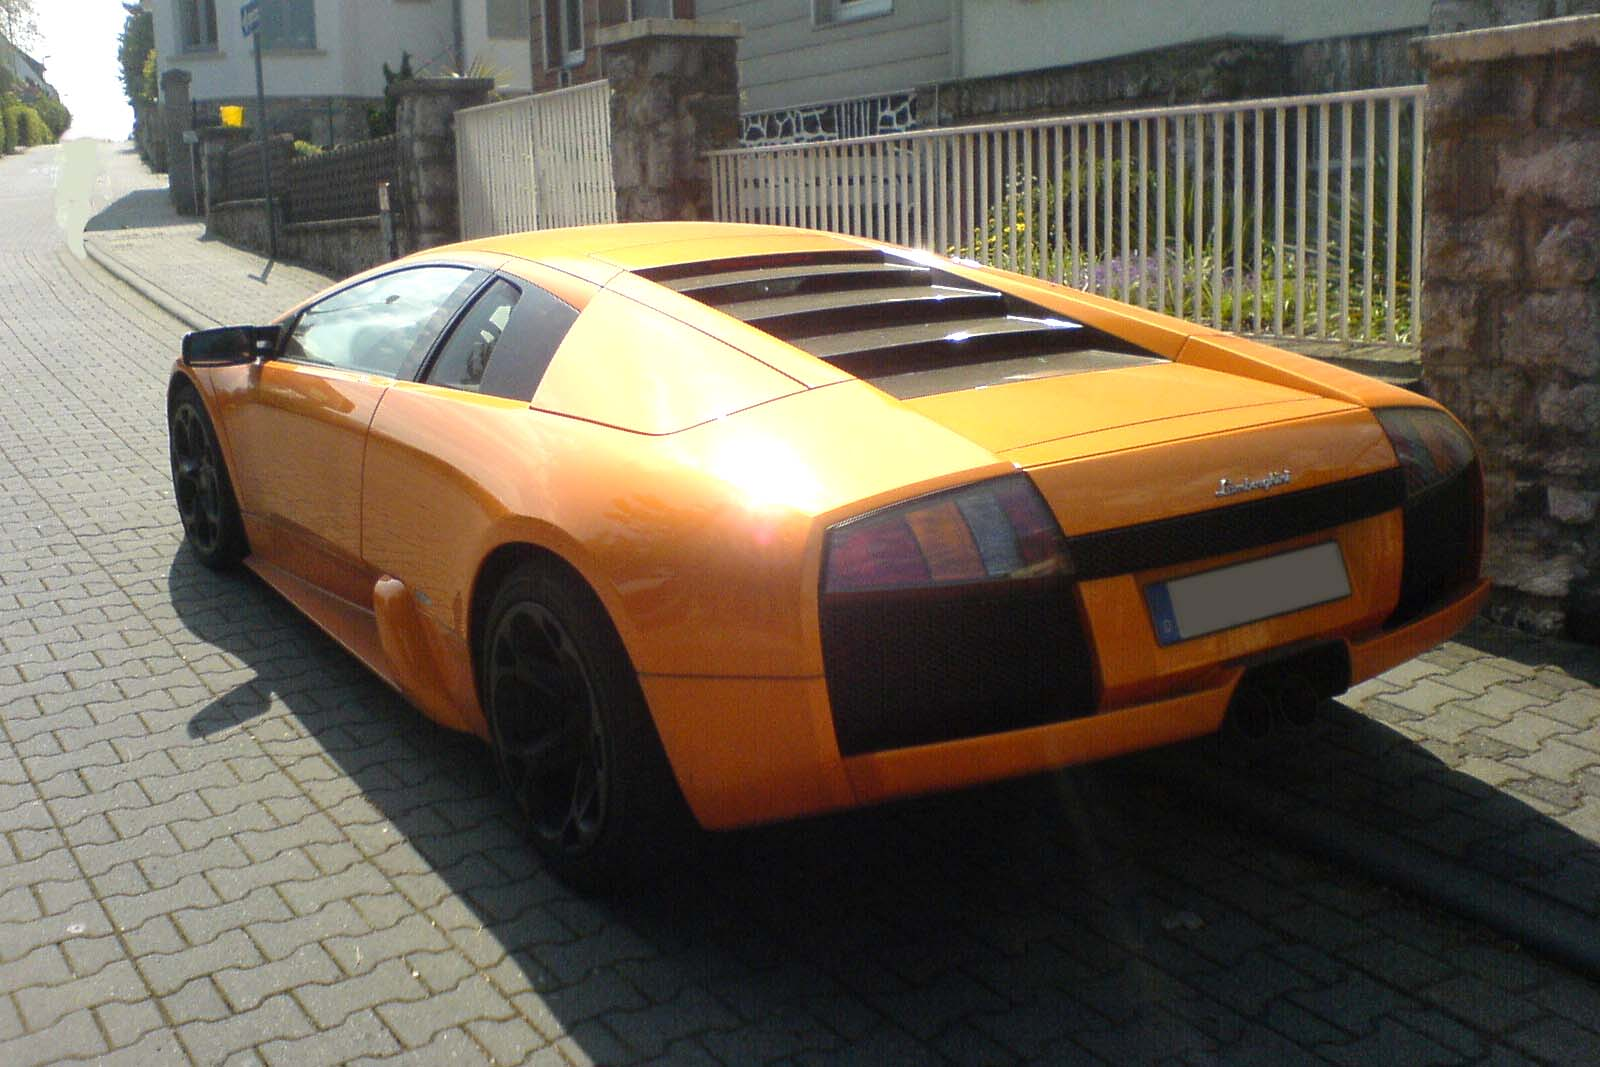 Orange Lamborghini Murcielago Wallpaper | www.imgkid.com ...